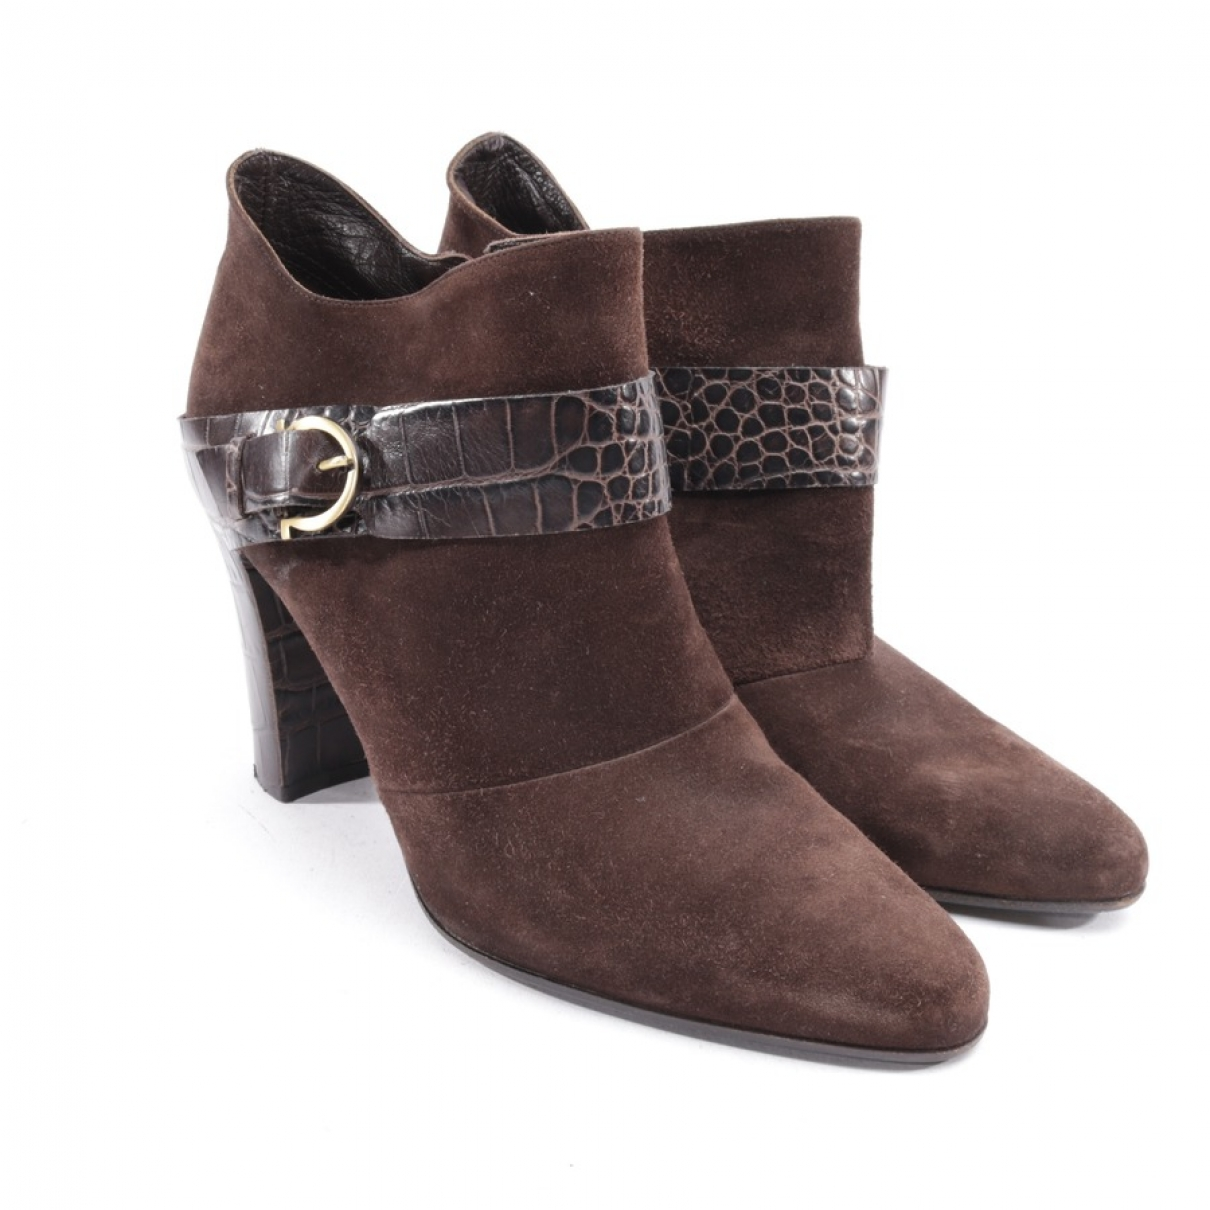 Salvatore Ferragamo \N Brown Suede Ankle boots for Women 41.5 EU